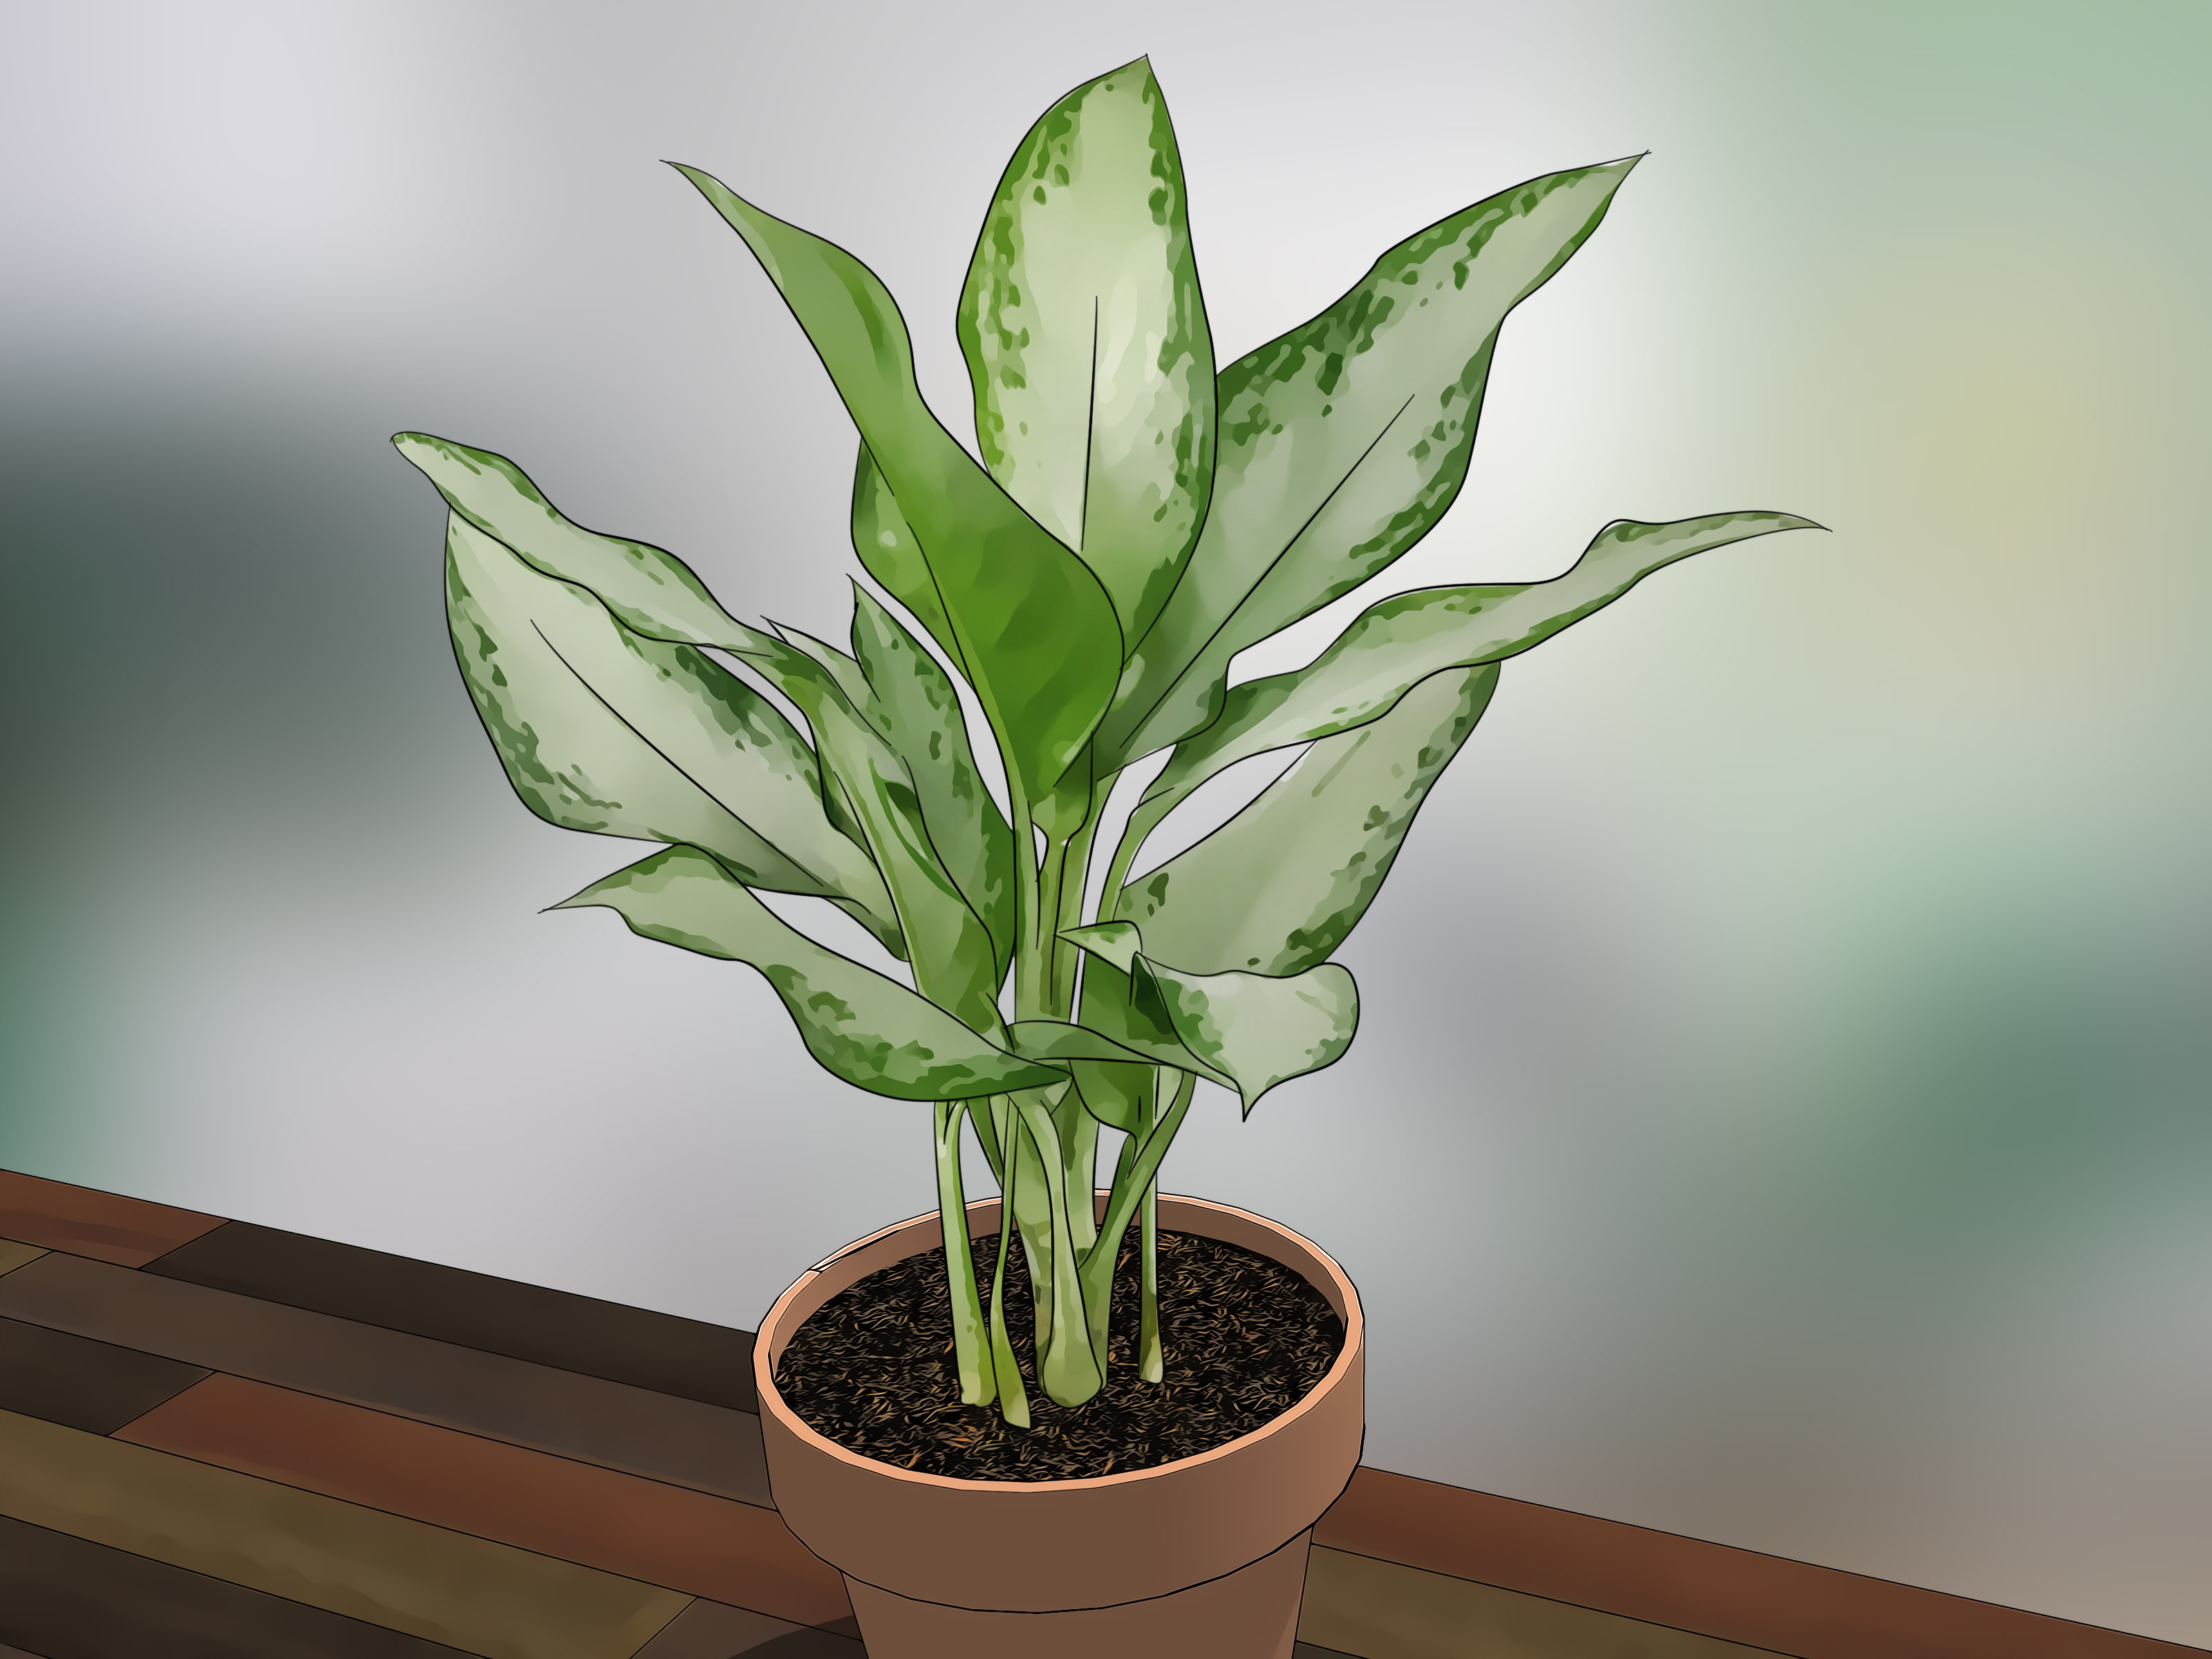 Pictures Of Flowering House Plants How To Care For Indoor Plants 15 Steps With Pictures